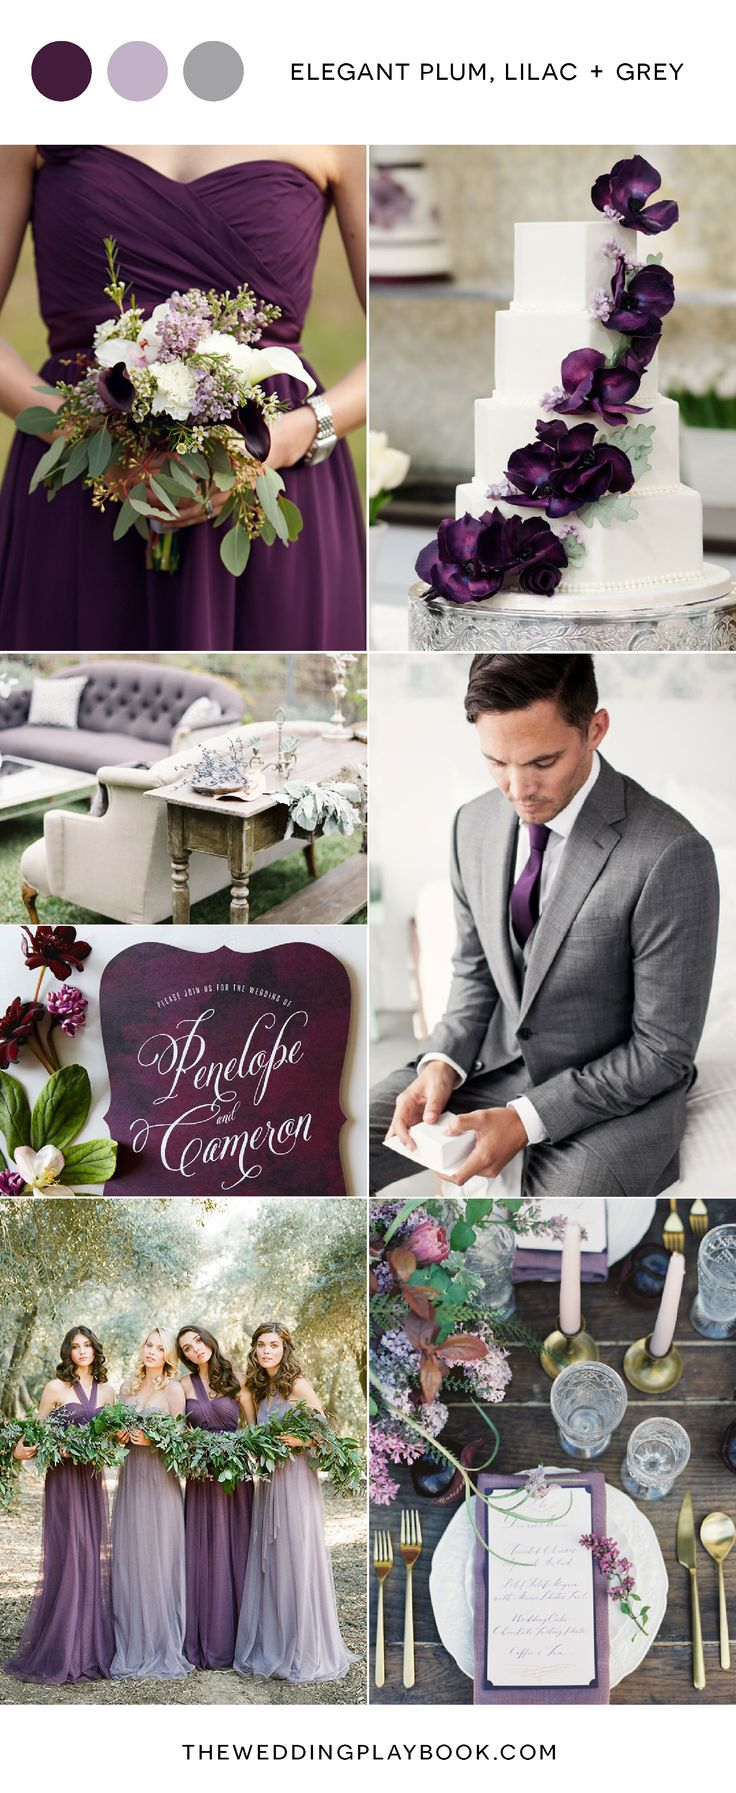 2015 08 decorating with plum and damson - Plum Lilac And Grey Wedding Inspiration